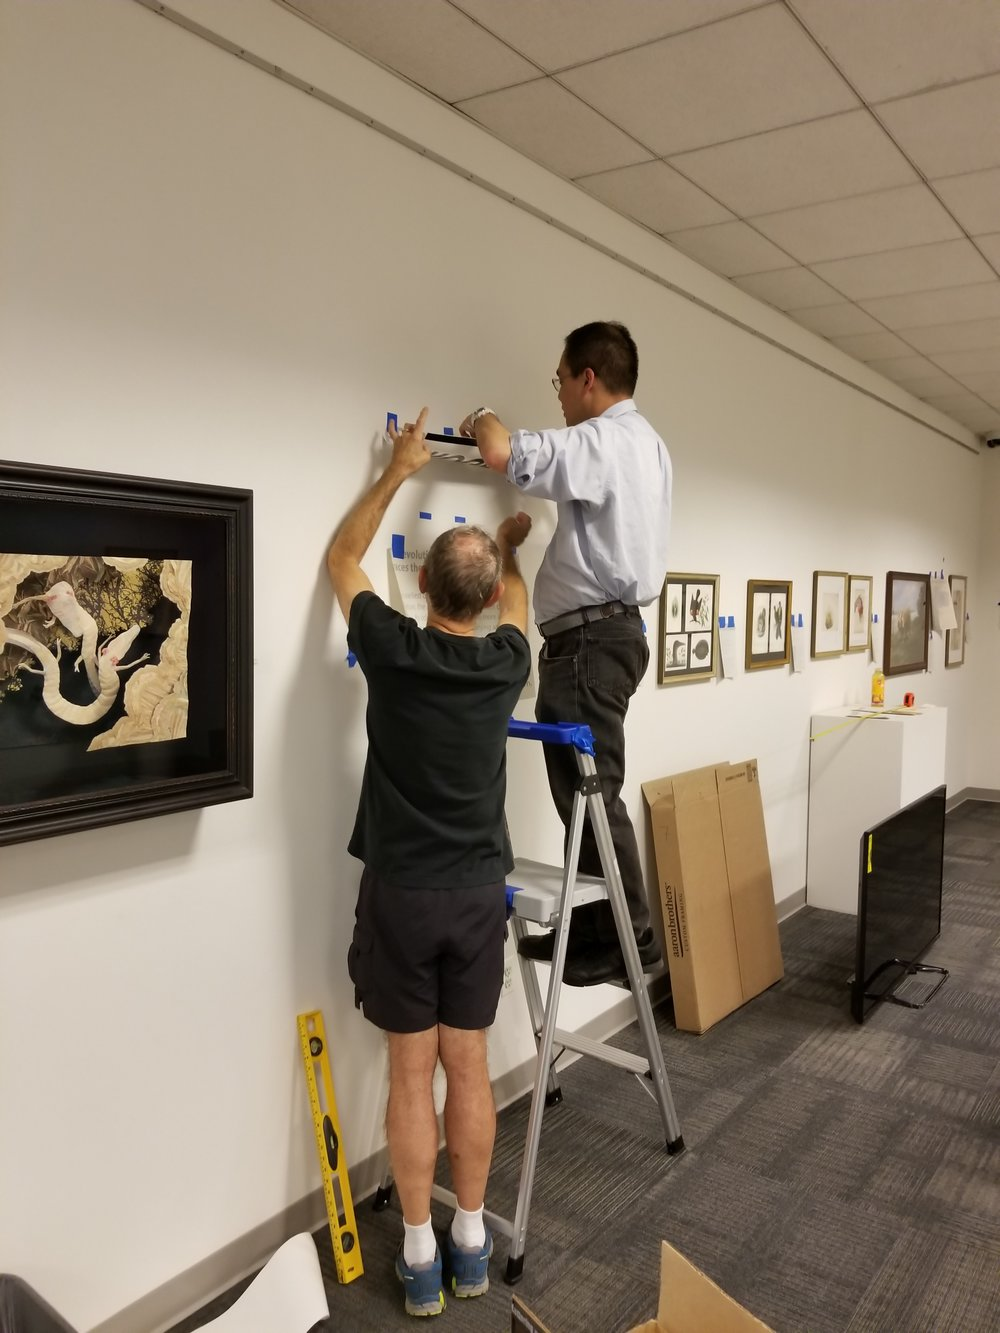 Exhibit Coordinator, Charles (on the ladder) and installation expert, Craig, are laying down the vinyl letters for the GNSI Juried Exhibition.